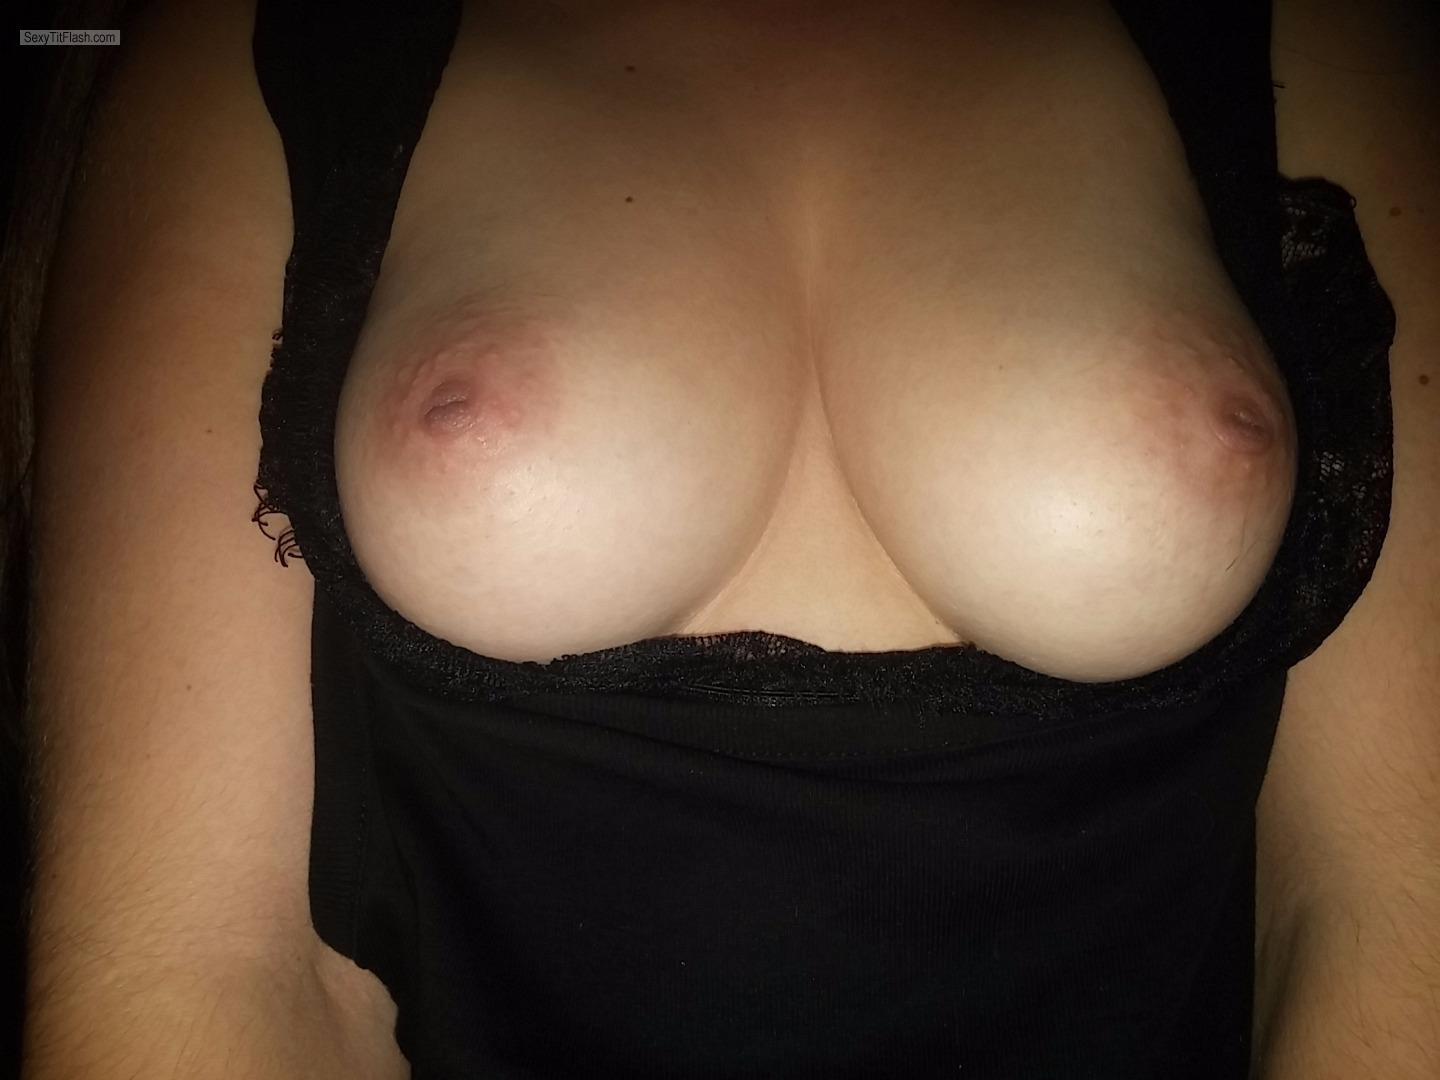 Small Tits Of My Wife Selfie by Sc